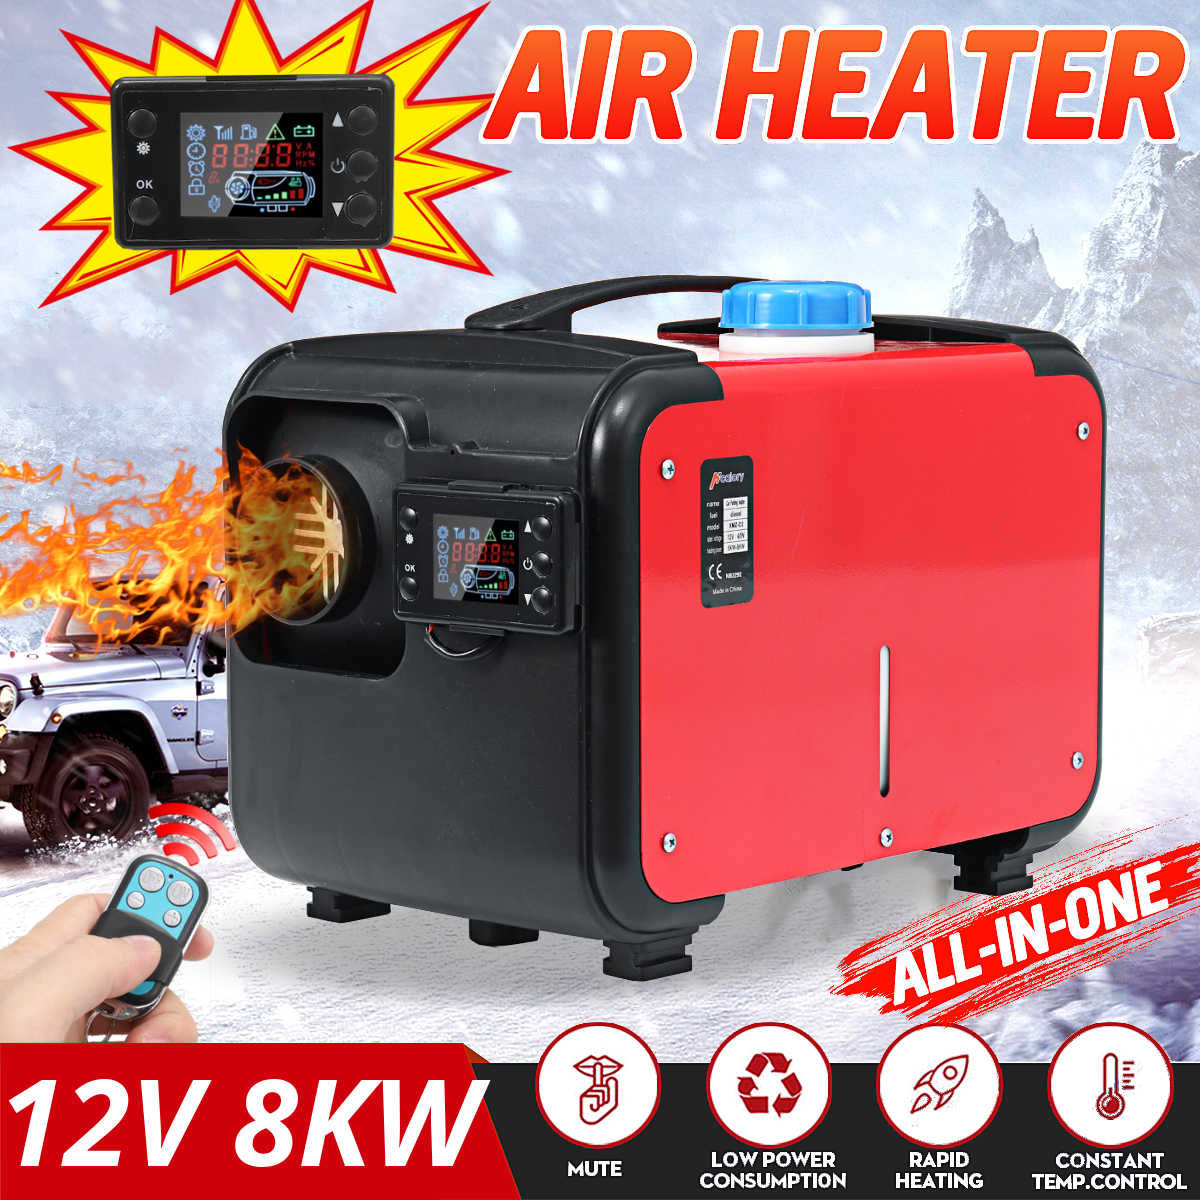 24//12V Diesel Air Heater Red /& Blcak LCD Monitor Diesel Car Heater for Vehicle Remote Control Diesel Parking Heater with 24V All in One Air Outlet for Car Bus RV Truck